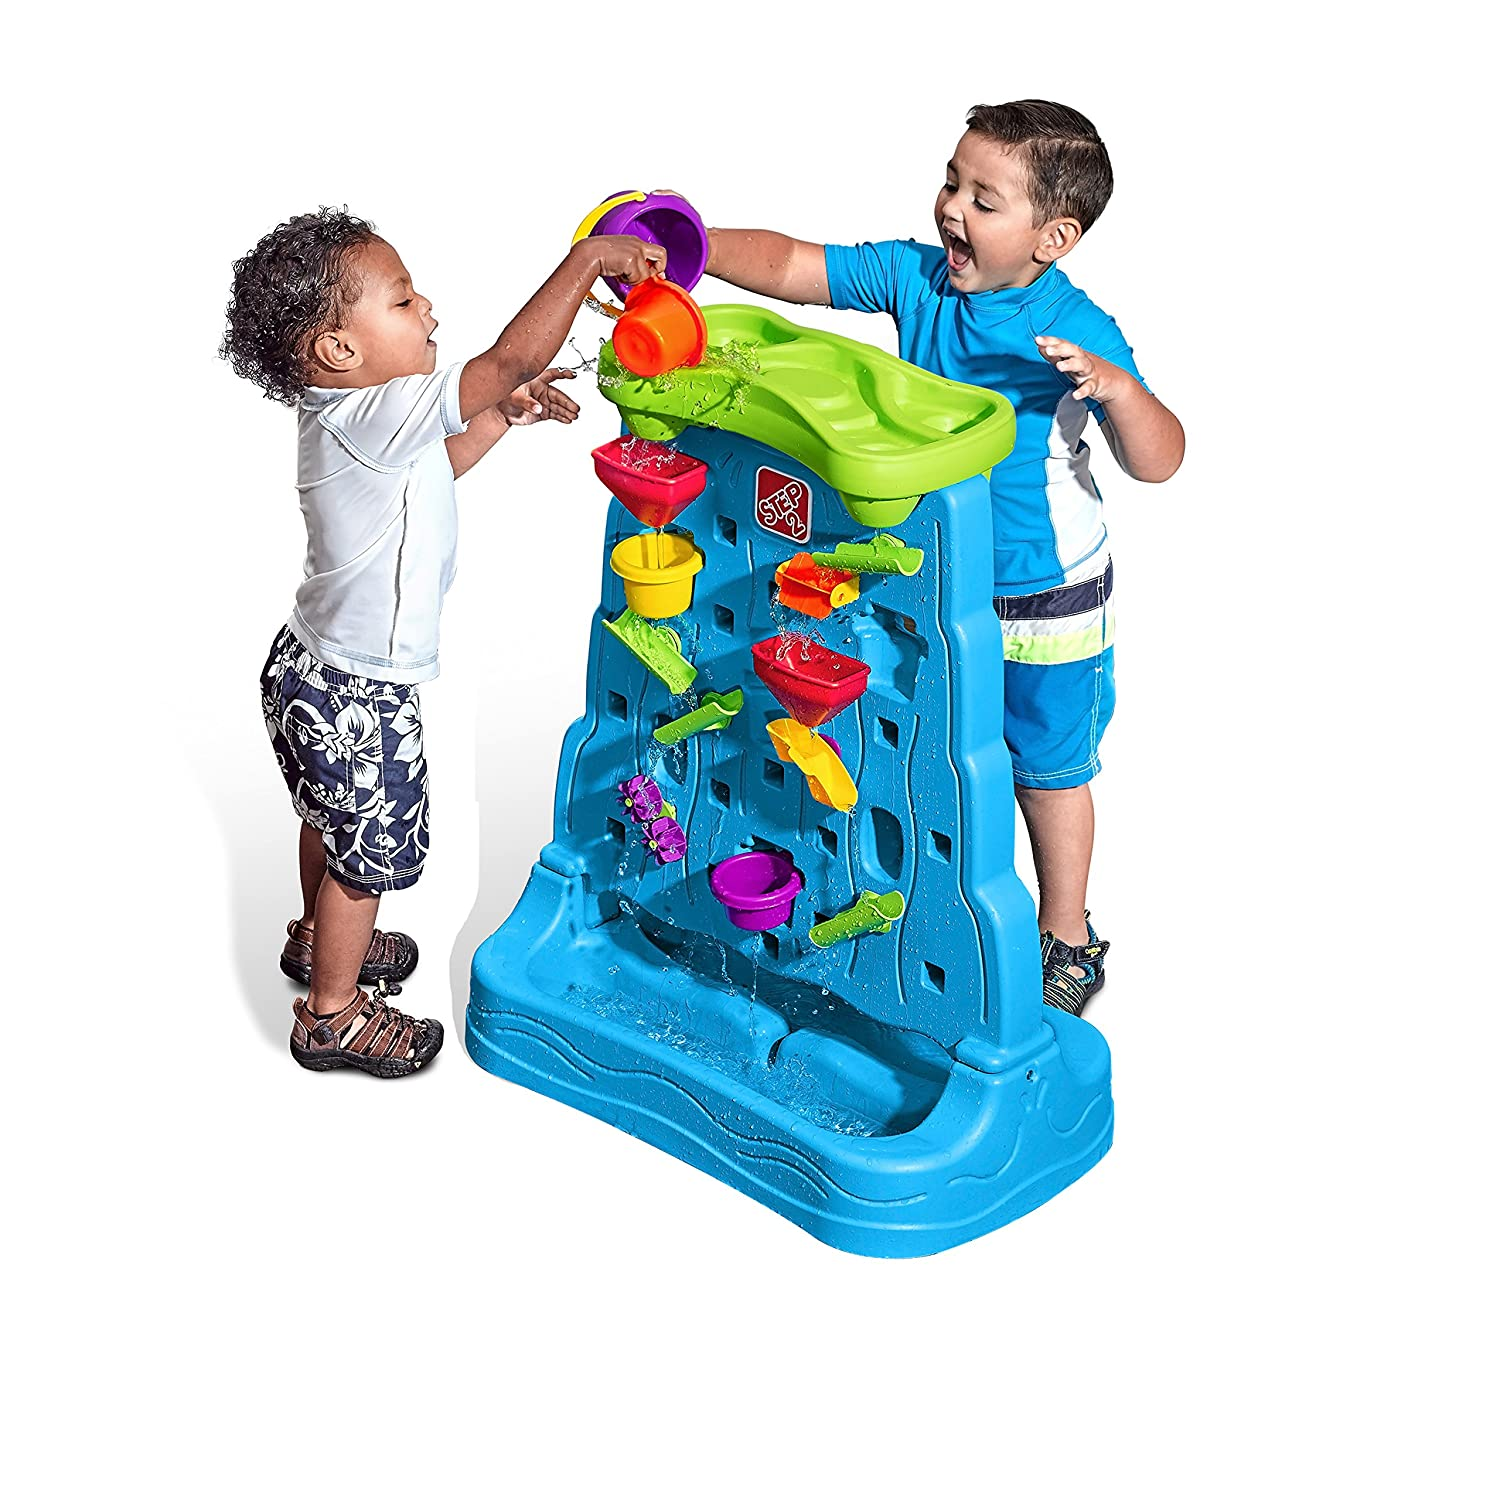 6. Step2 Waterfall Discovery Wall Playset